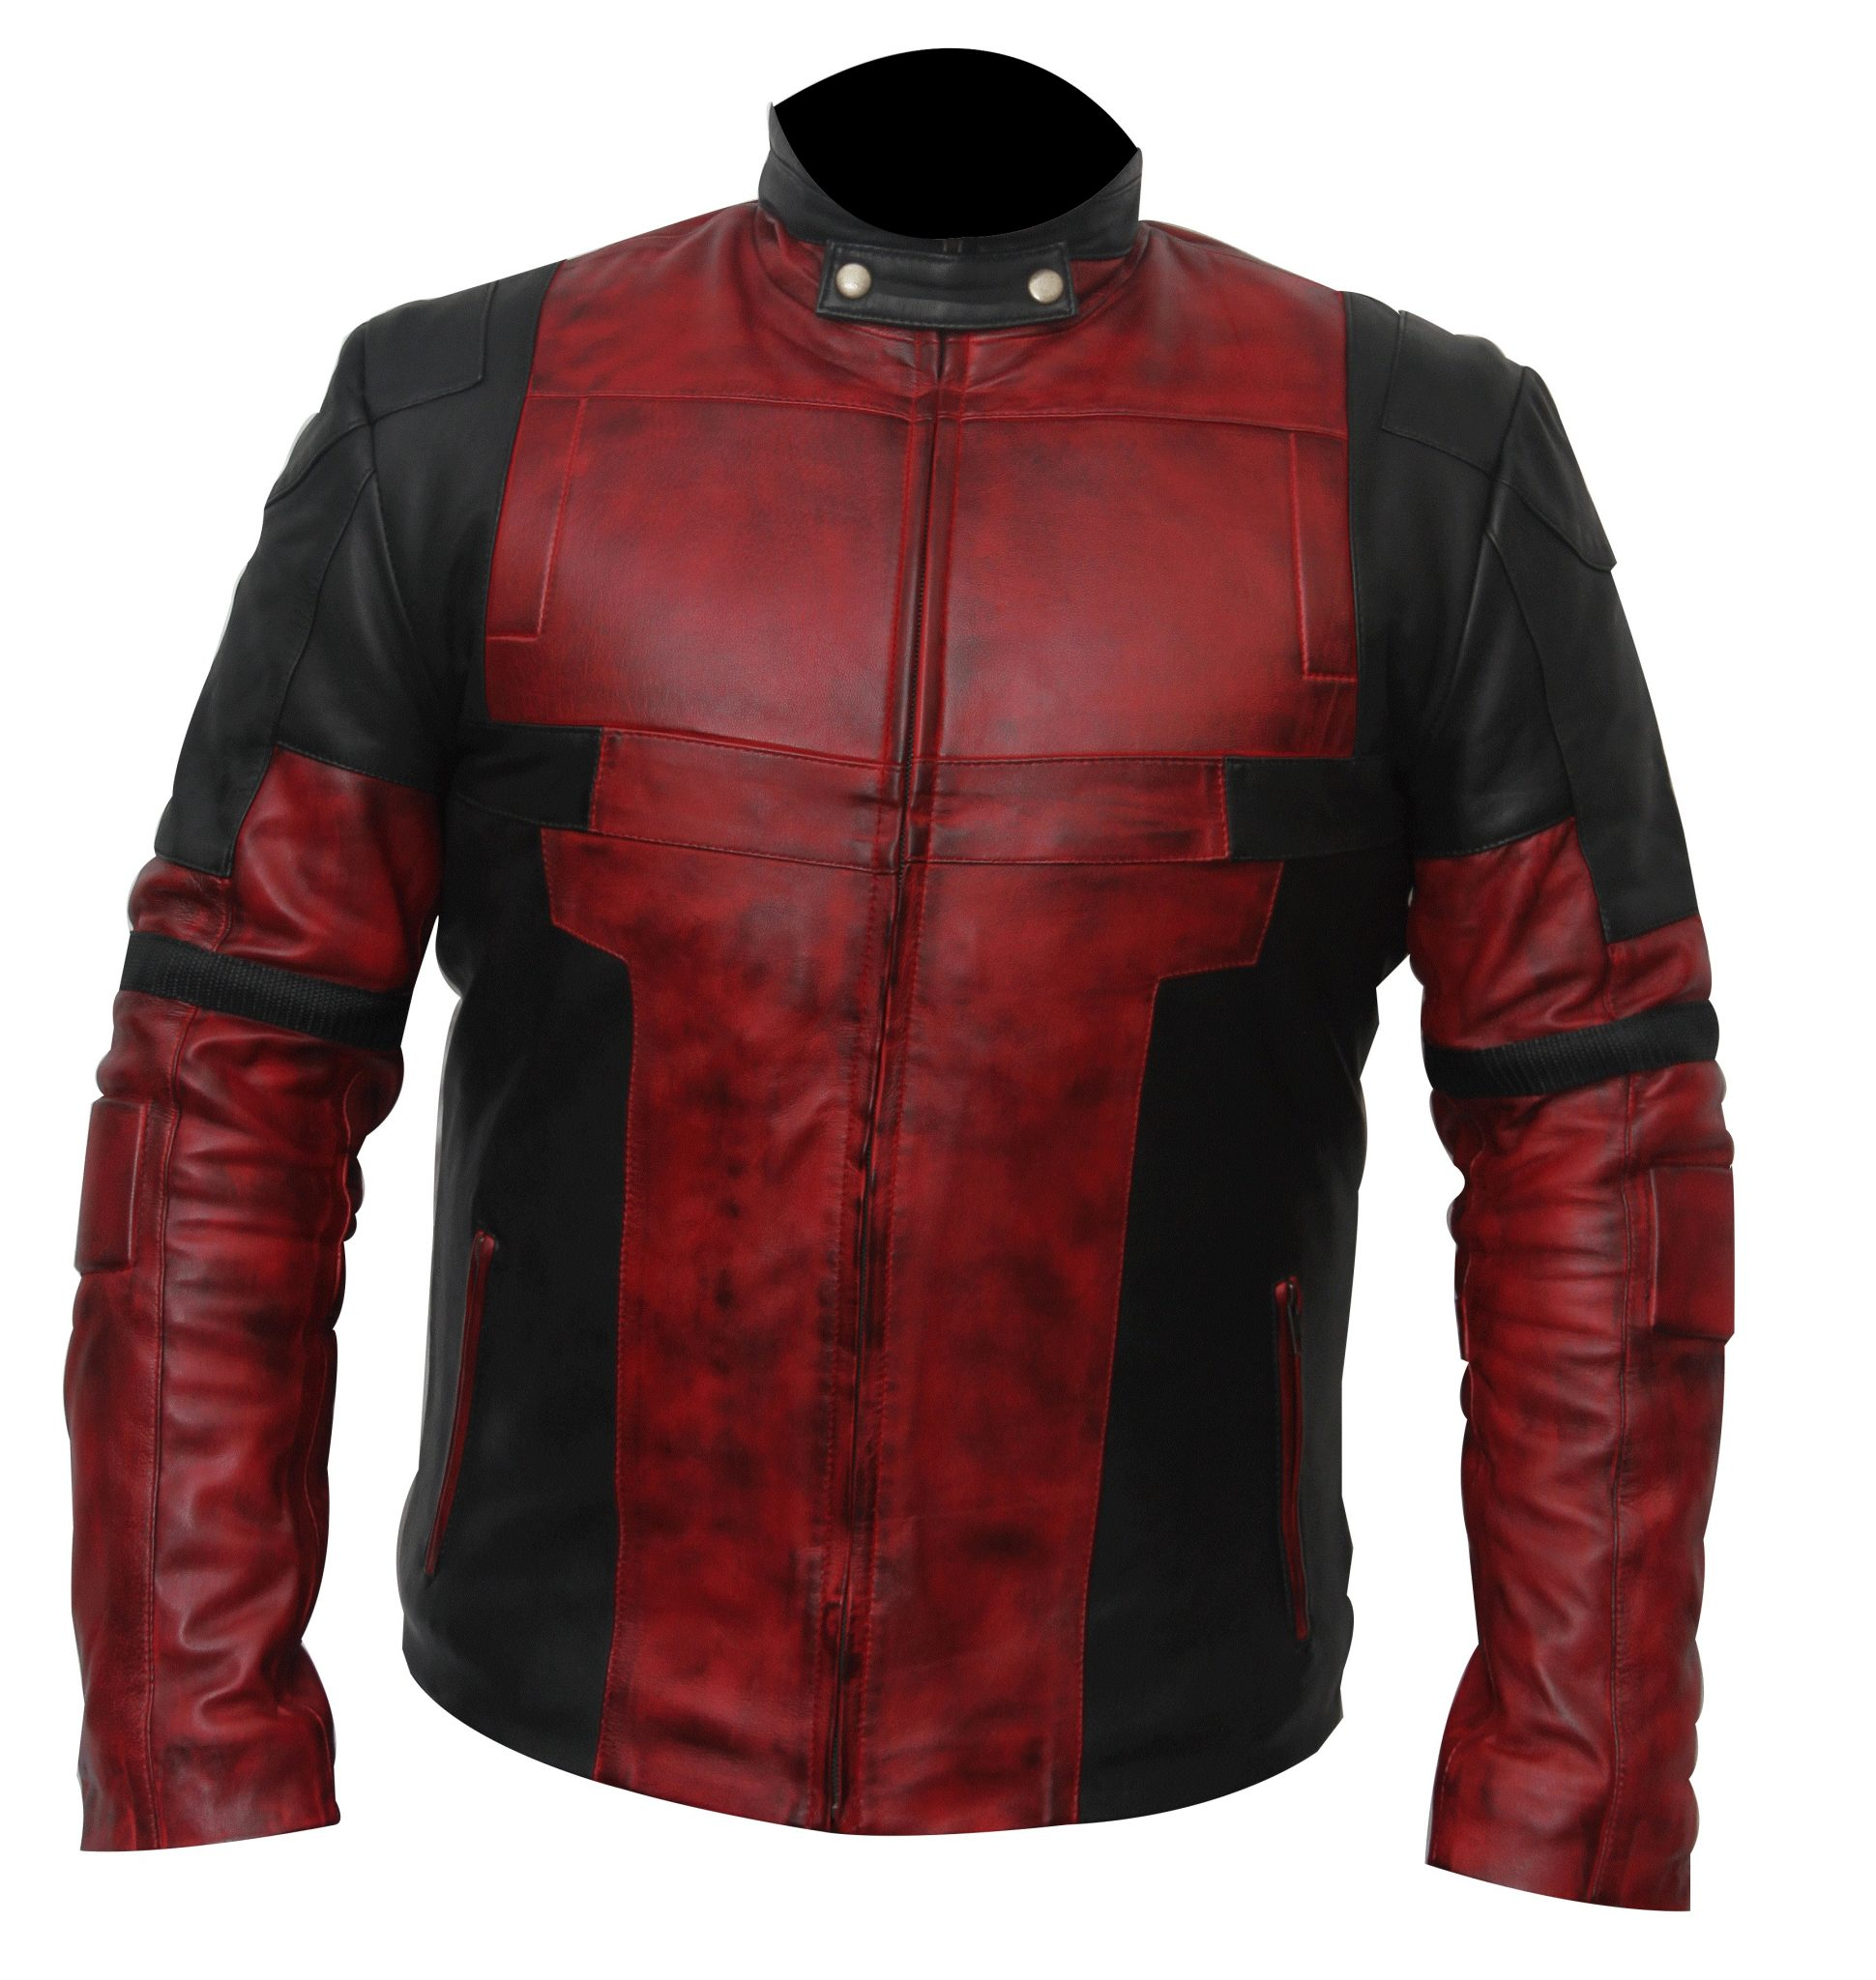 3e04dccd0 Men's Deadpool Leather Motorcycle Jacket For Bikers